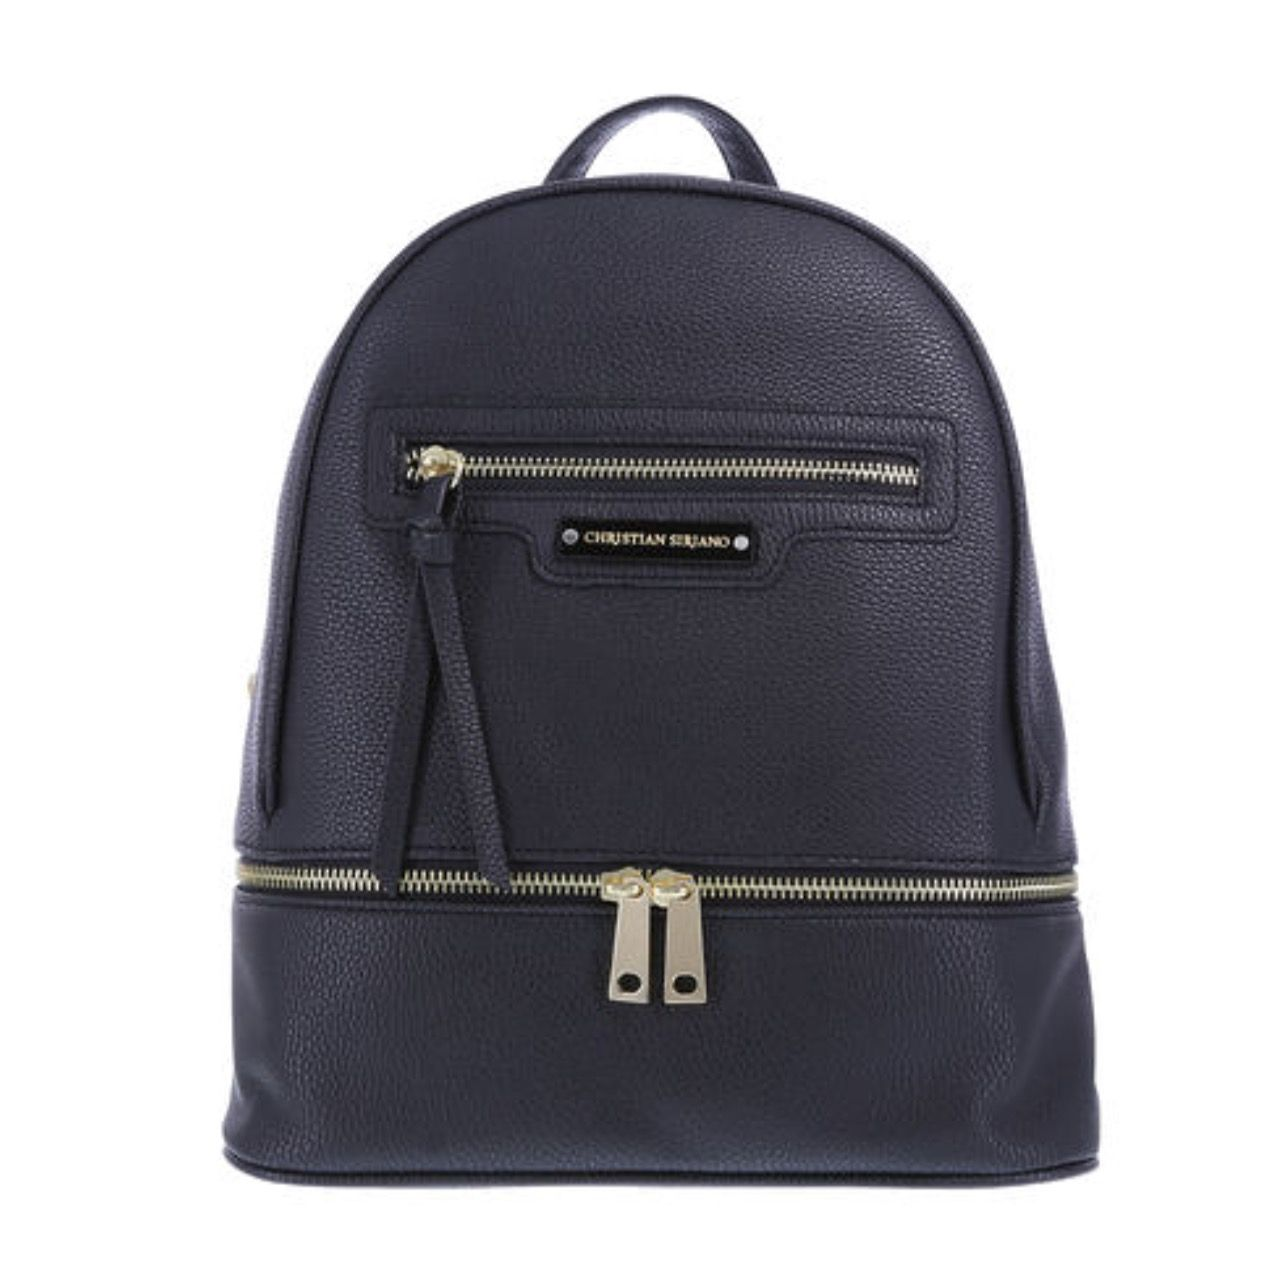 5d5523dac989 Christian Siriano Payless Black Backpack